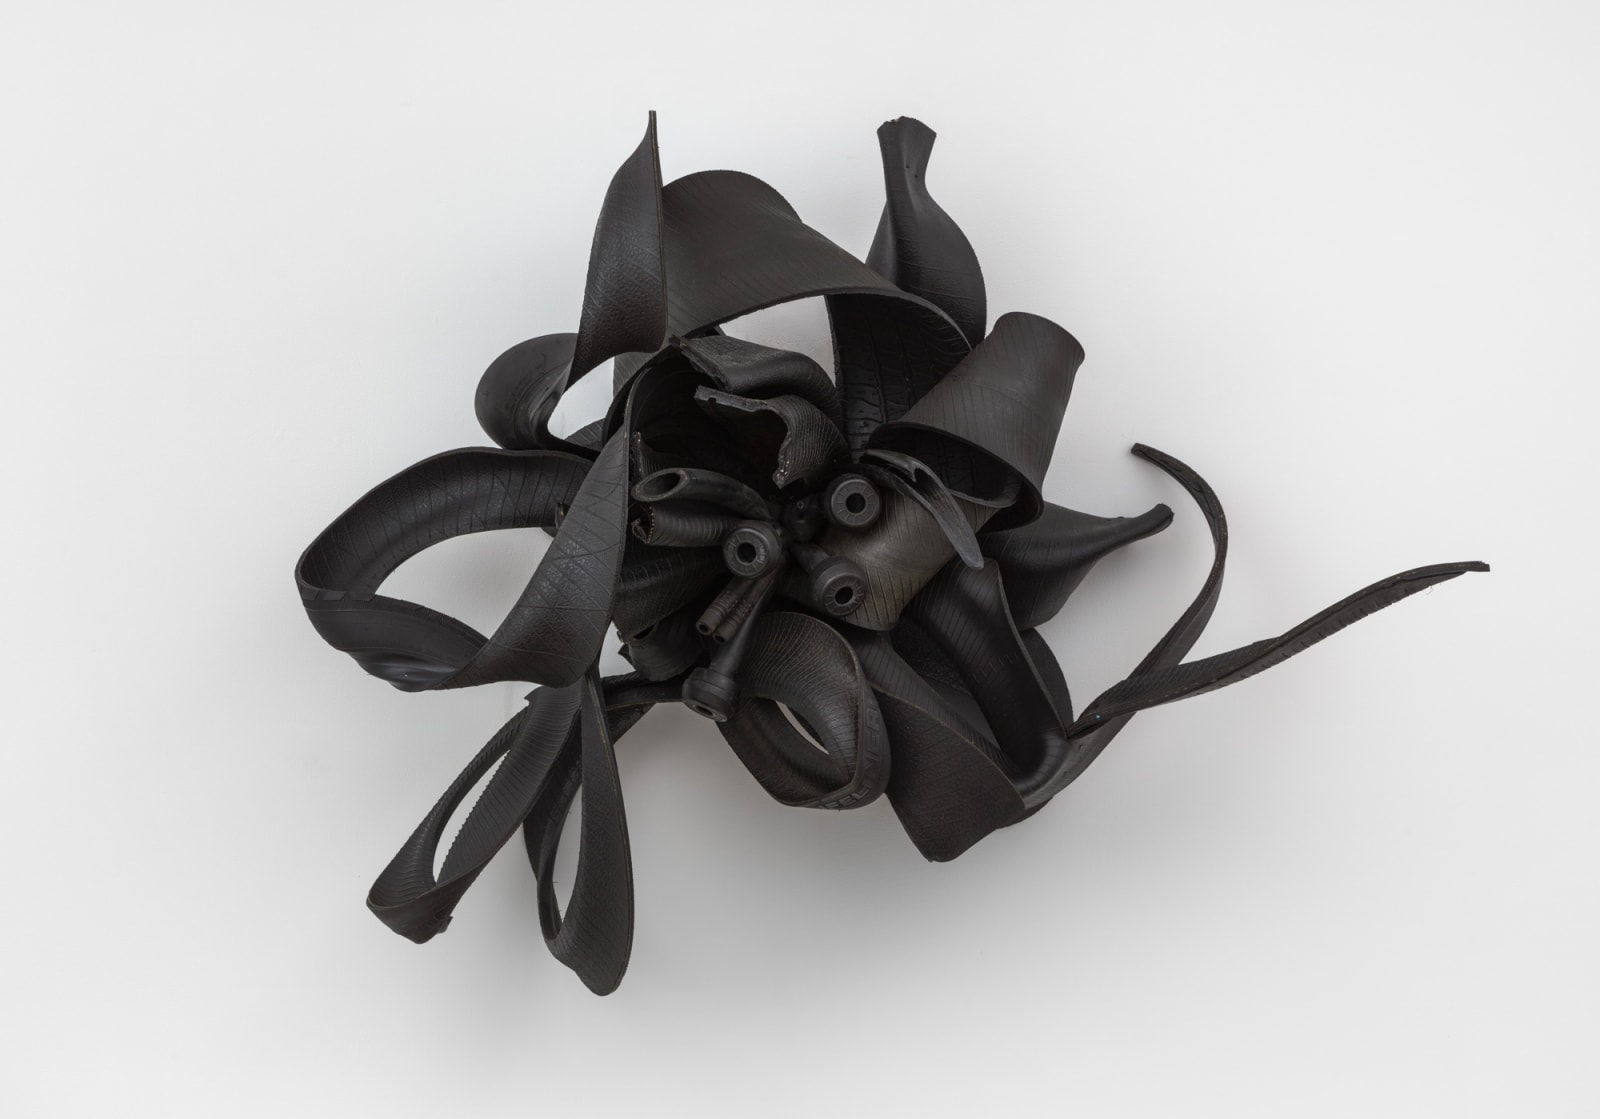 Chakaia Booker (b. 1953) Sheltered Thoughts, 2007 rubber tires and wood 32 x 36 x 17 in 81.3 x 91.4 x 43.2 cm (CHB7788)